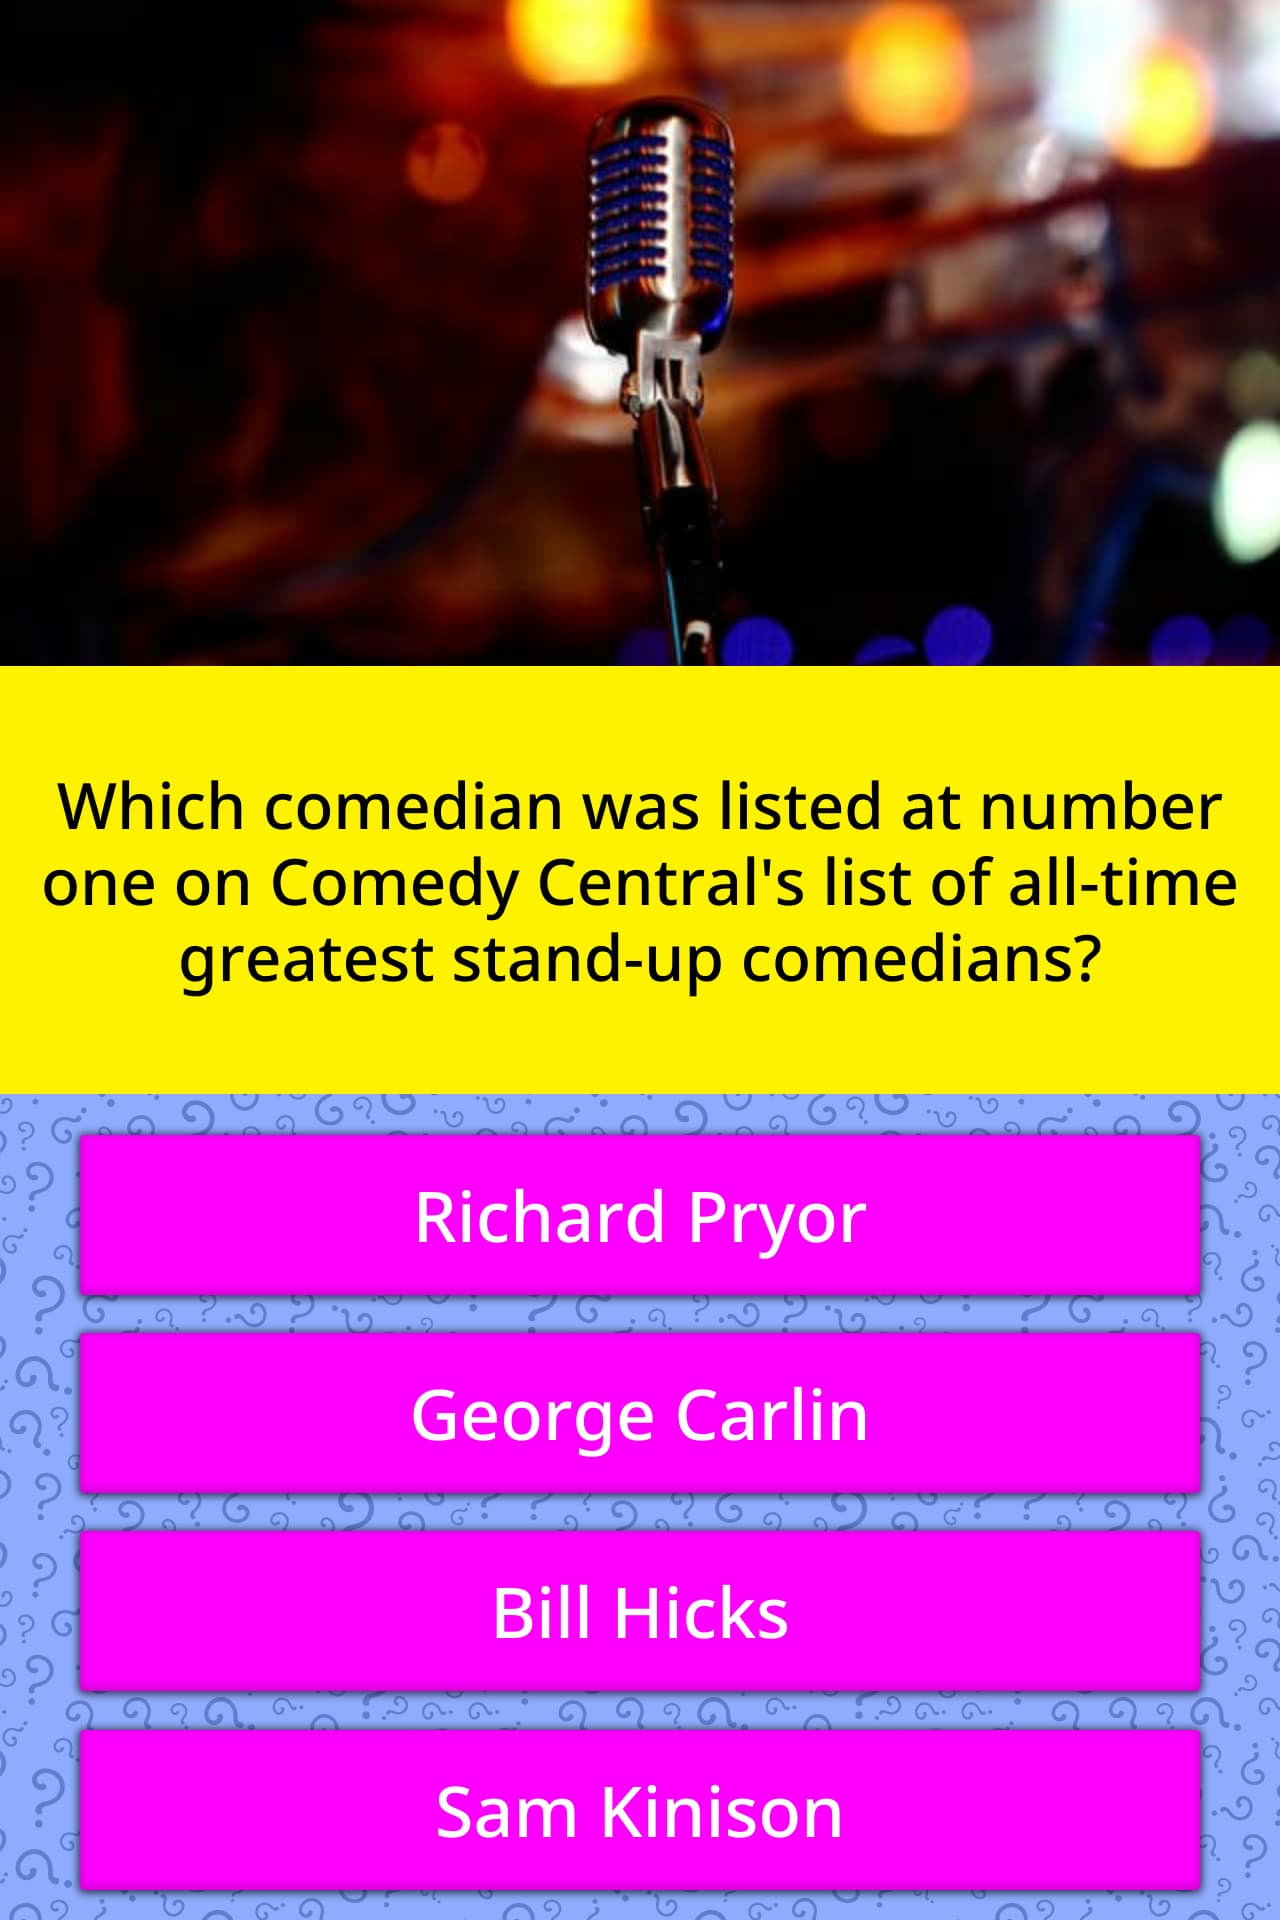 Comedy Central List Of Comedians : comedy, central, comedians, Which, Comedian, Listed, Number..., Trivia, Questions, QuizzClub